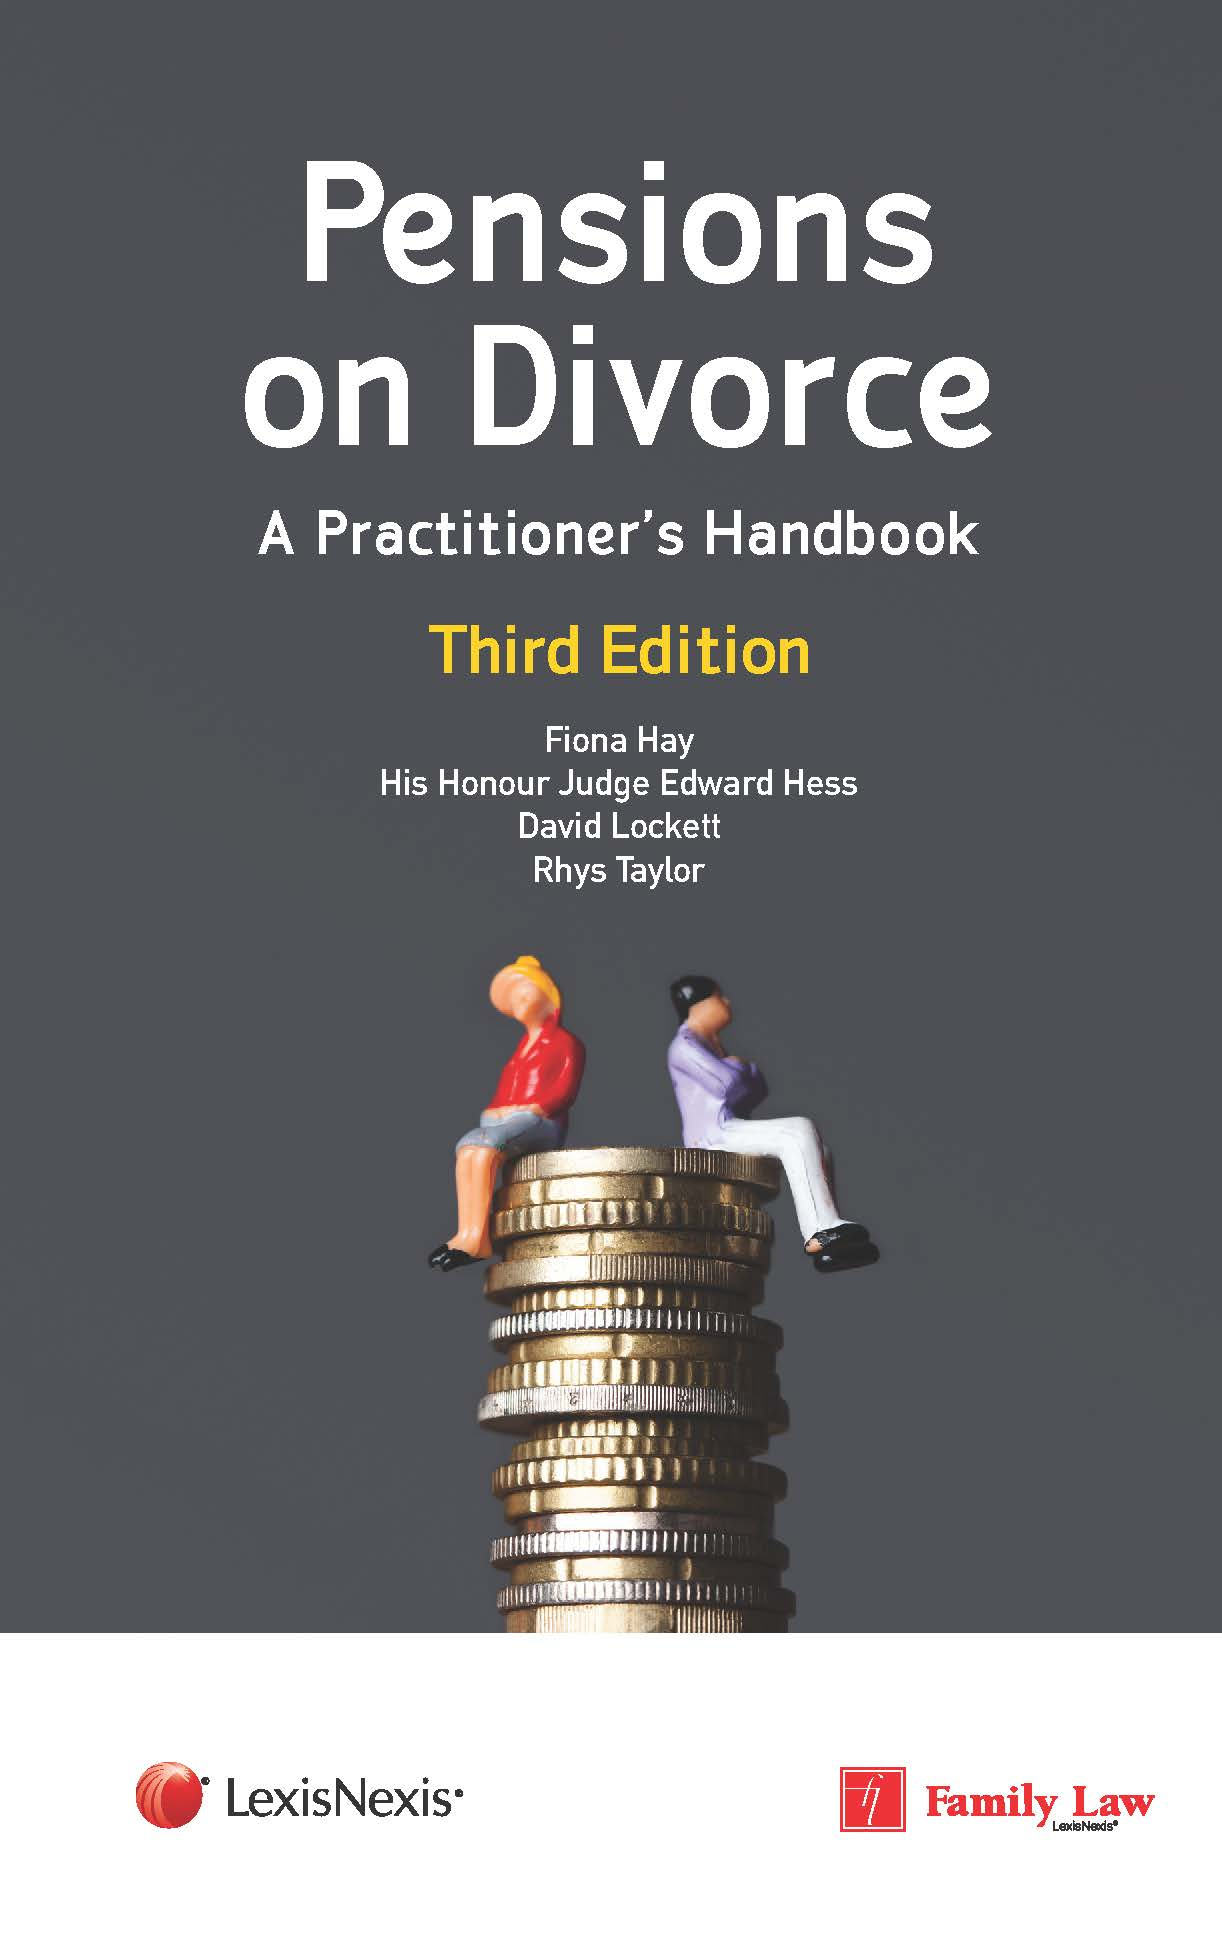 Pensions on Divorce